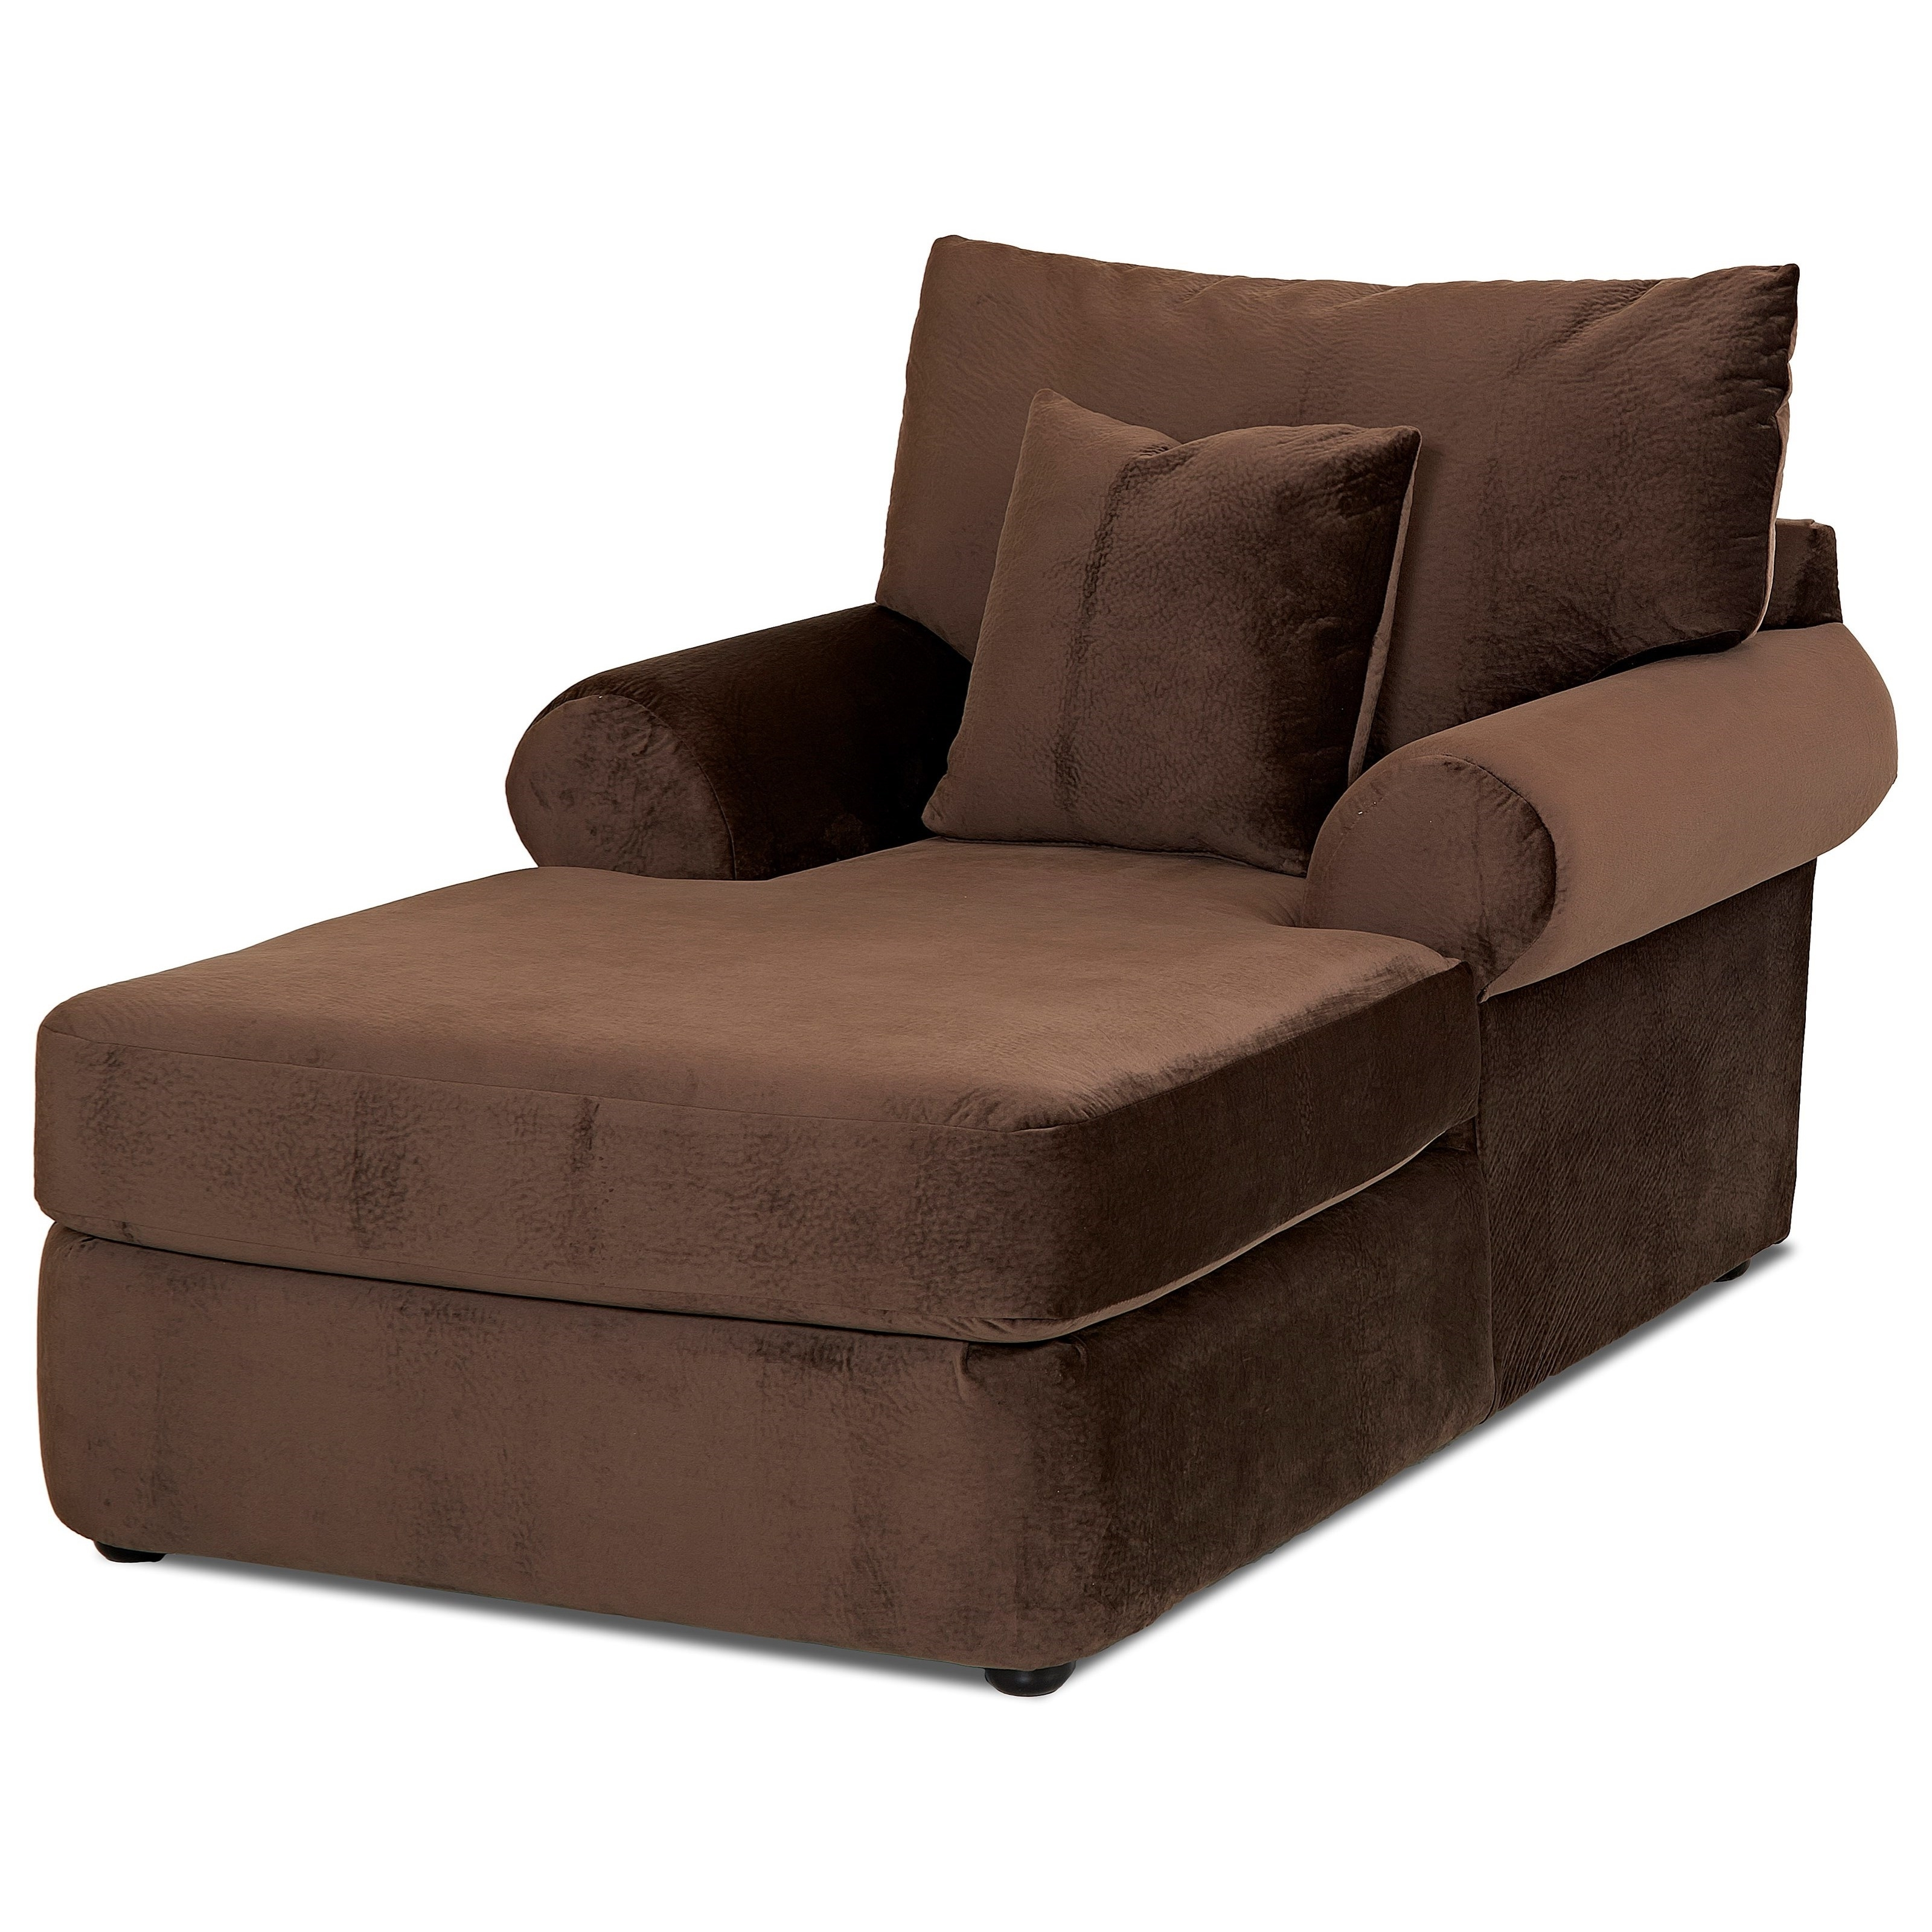 Most Recent Klaussner Chaise Lounge Chairs Regarding Casual Plush Chaise Loungeklaussner (View 2 of 15)